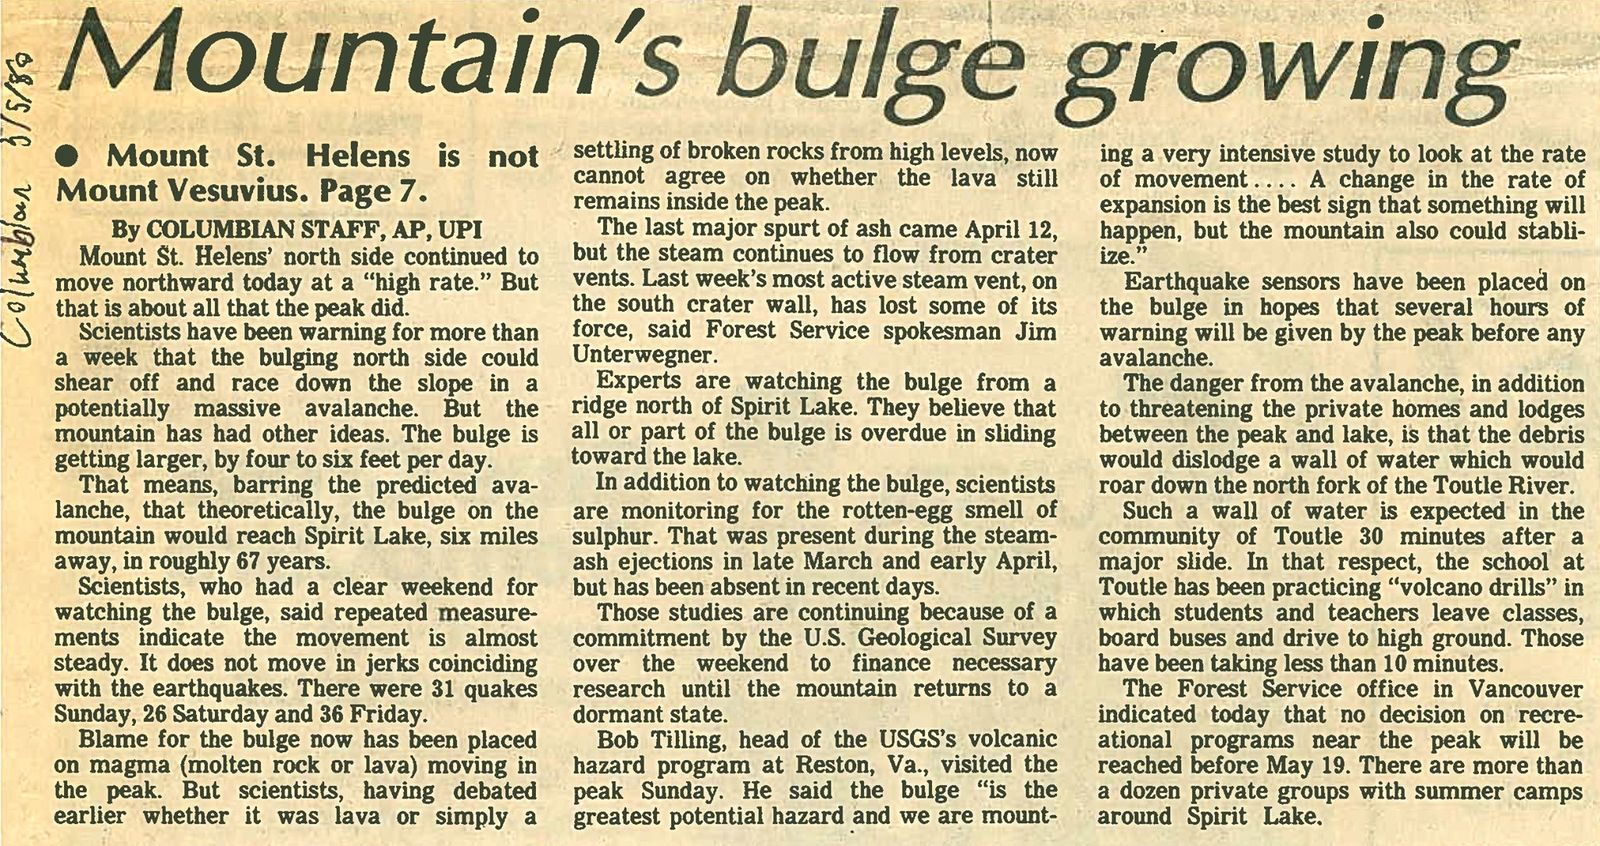 St Helens - Article of 03.05.1980in the Columbian newspaper commenting on the growth of the bulge - one click to enlarge